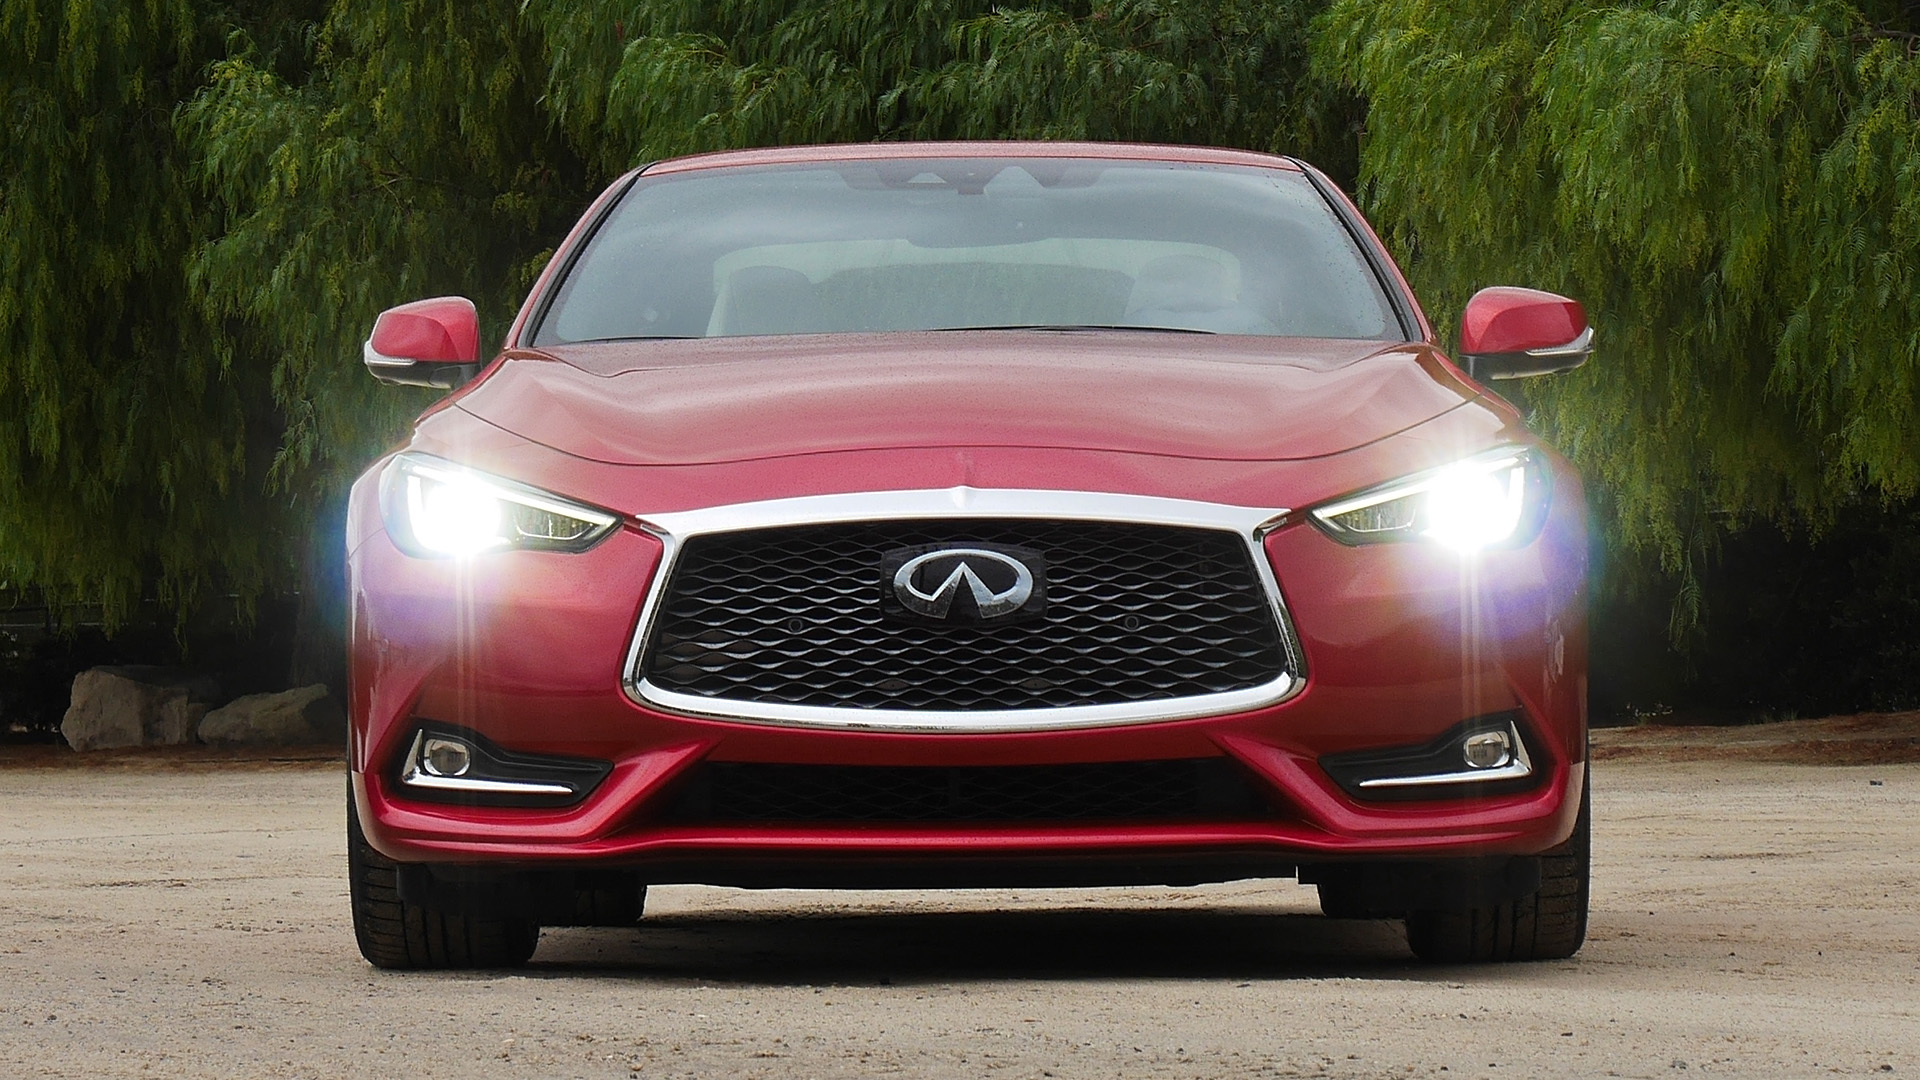 2017 Infiniti Q60 Red Exterior Front (Photo 14 of 32)